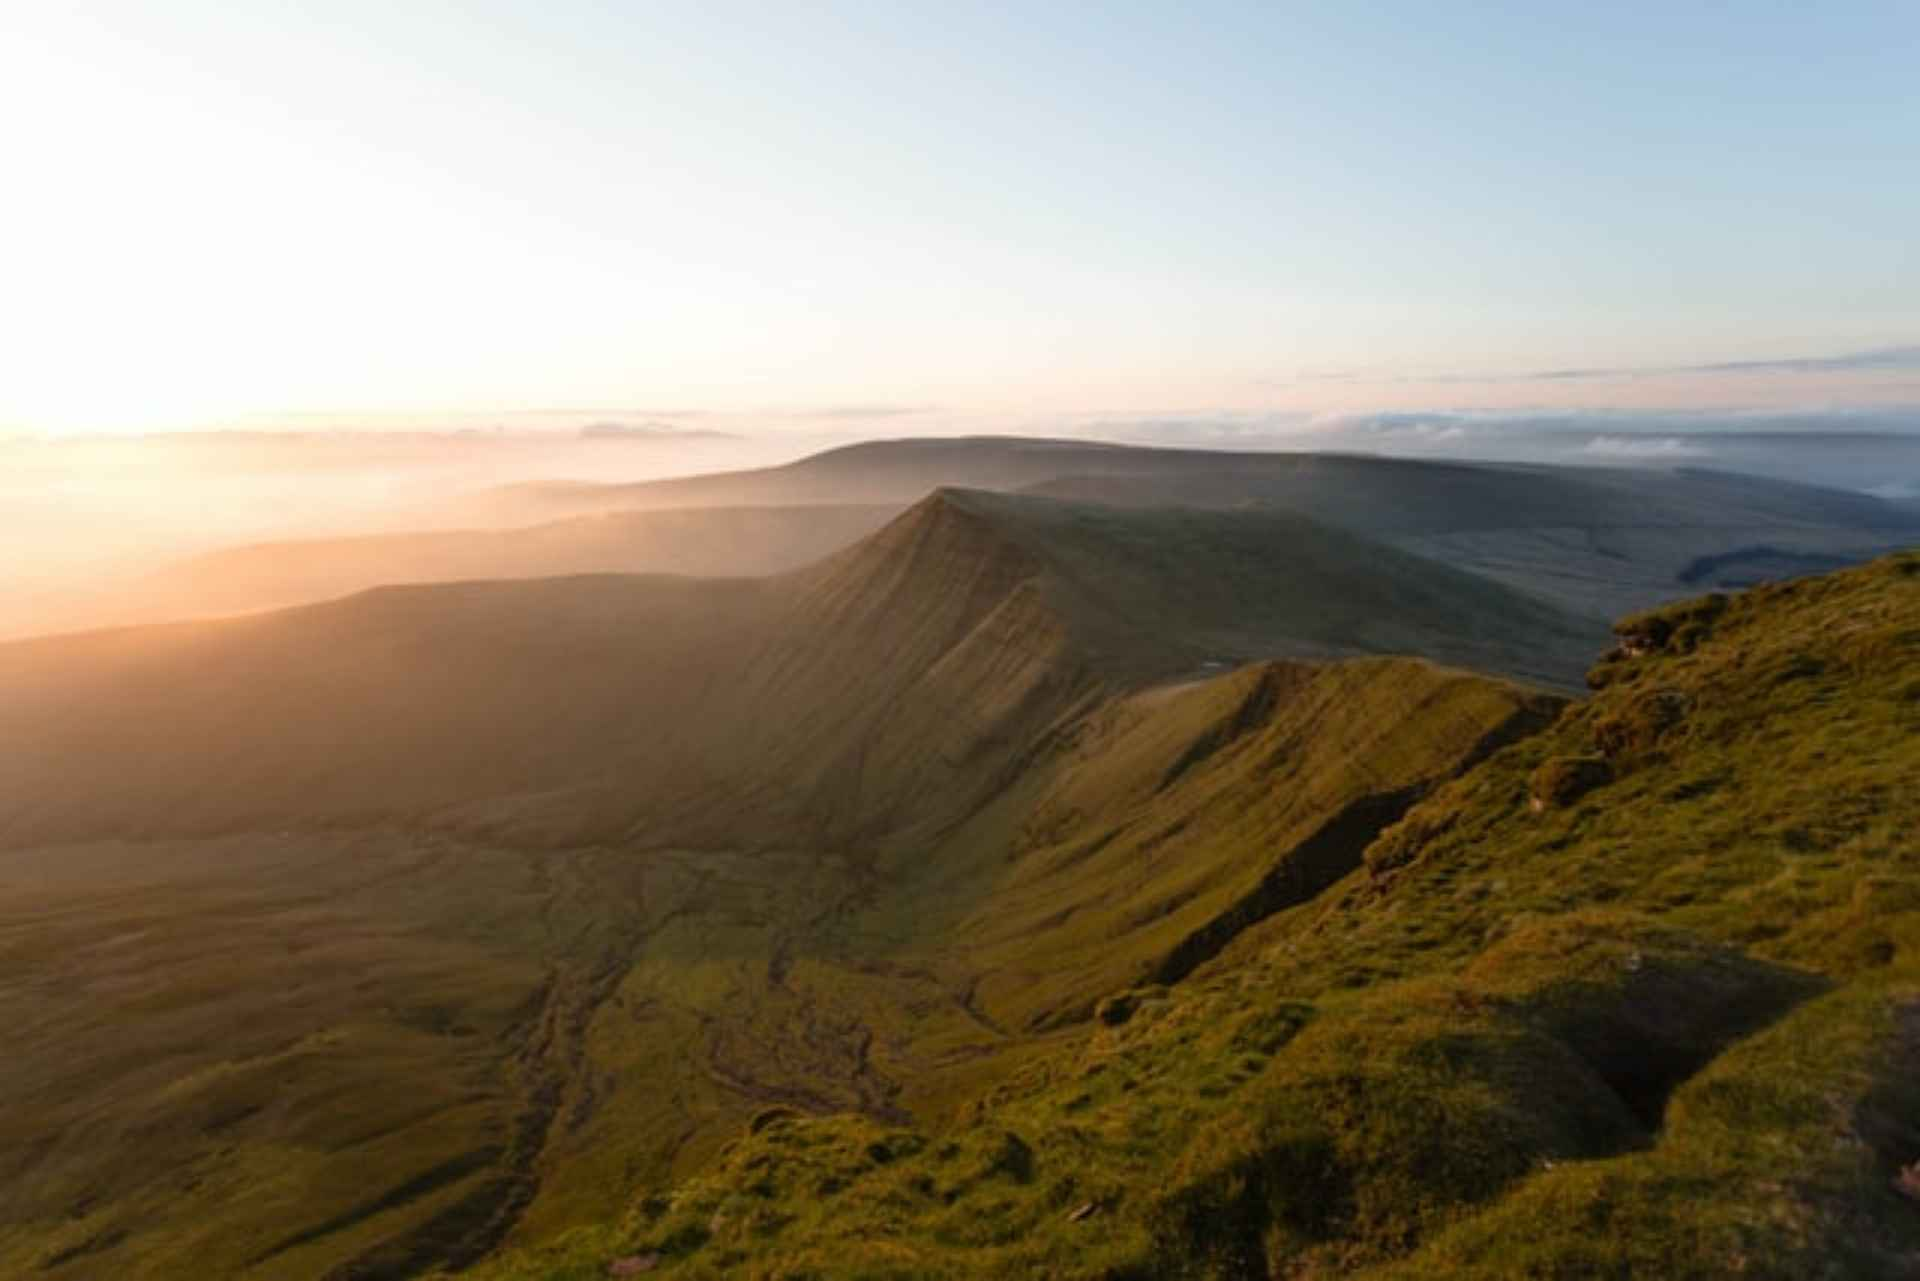 pen-y-fan-mountain-in-the-brecon-beacons-at-sunset-days-out-in-south-wales